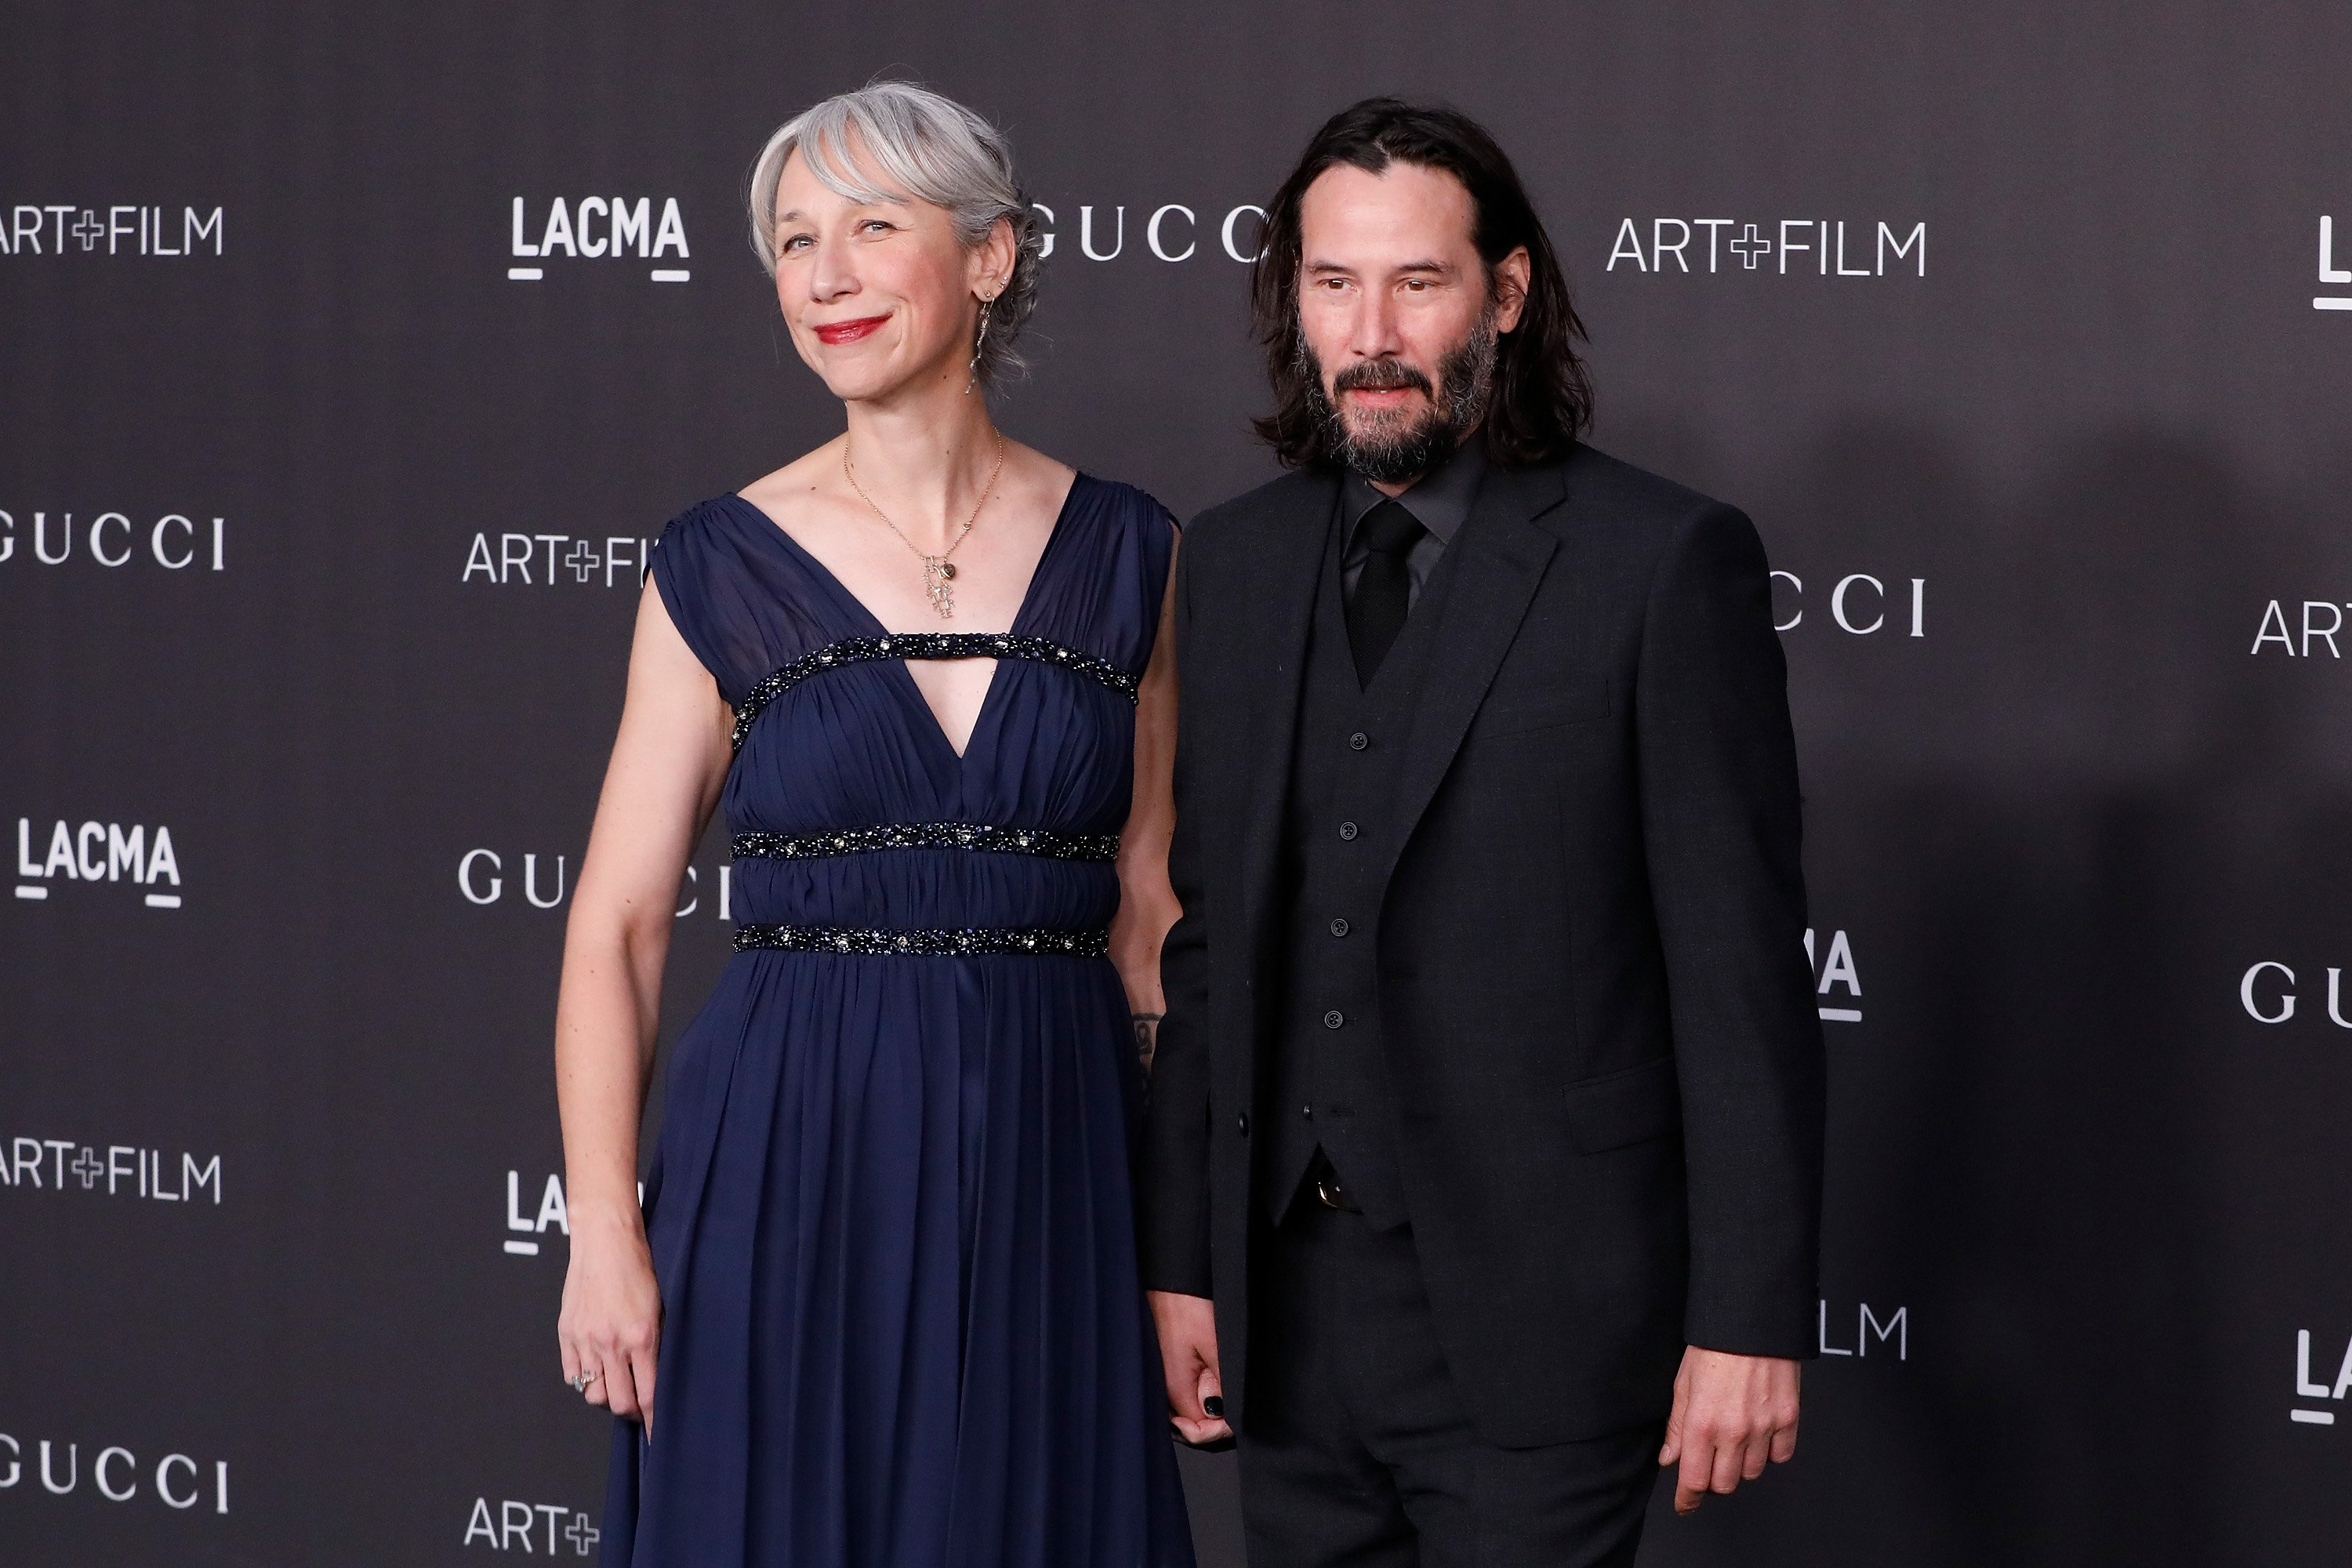 Alexandra Grant and Keanu Reeves attend the 2019 LACMA Art & Film Gala on November 02, 2019 in Los Angeles, California. | Source: Getty Images.